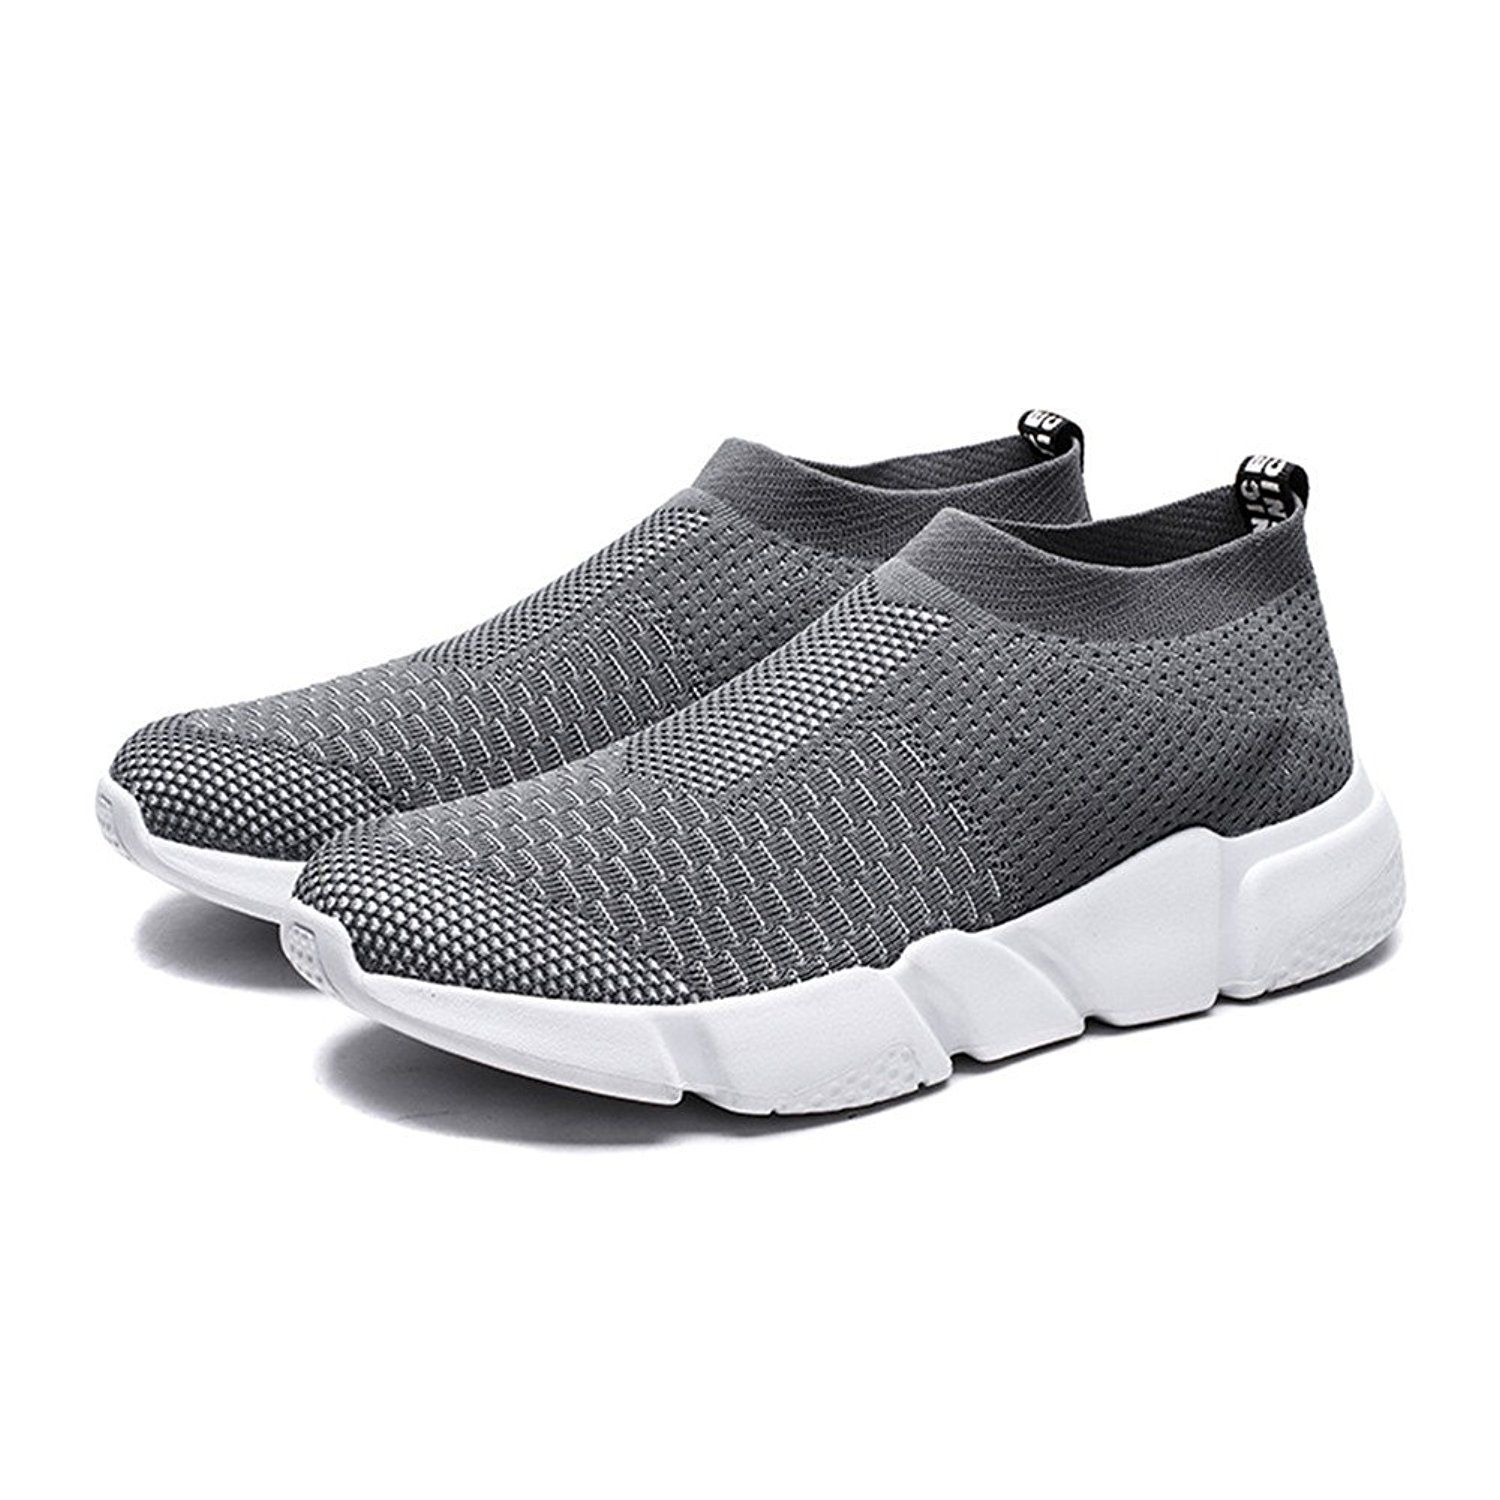 Shoes Couples Shoes Mens Casual Shoes Womens Sneakers Low-Top Breathable Running Shoes Lightweight (Color : Gray Size : 36)